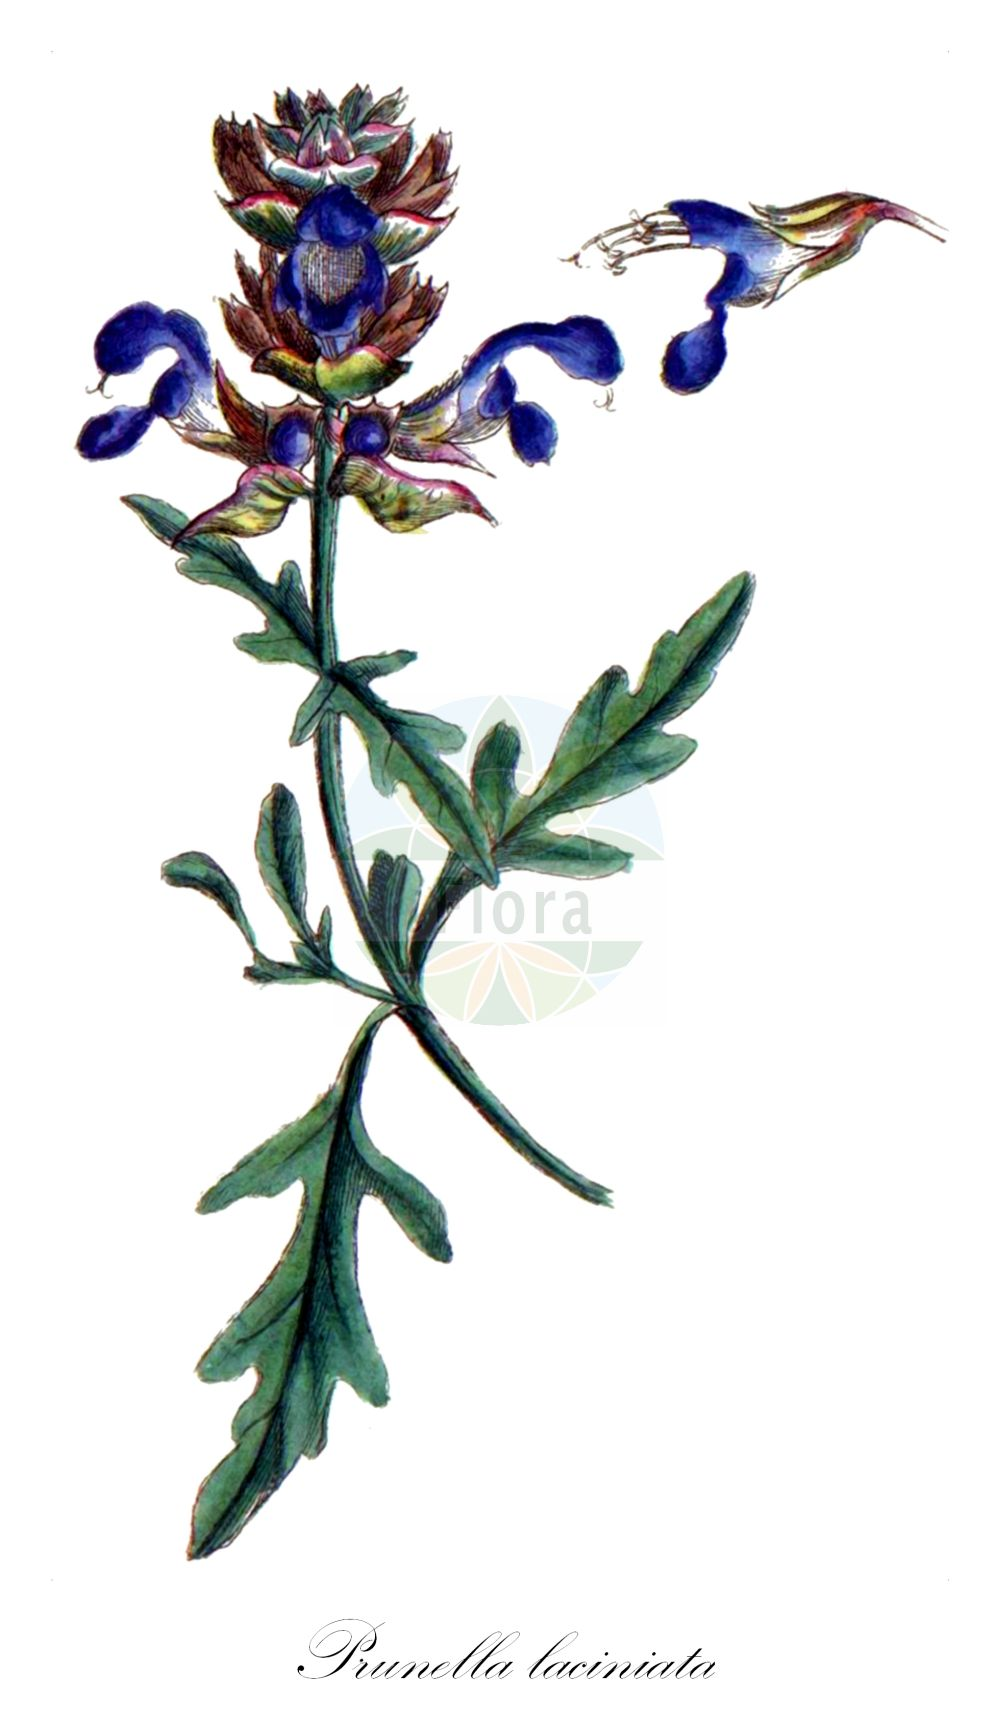 Historische Abbildung von Prunella laciniata (Weisse Braunelle - Cut-leaved Selfheal). Das Bild zeigt Blatt, Bluete, Frucht und Same. ---- Historical Drawing of Prunella laciniata (Weisse Braunelle - Cut-leaved Selfheal).The image is showing leaf, flower, fruit and seed.(Prunella laciniata,Weisse Braunelle,Cut-leaved Selfheal,Prunella afriquena,Prunella alba,Prunella integerrima,Prunella sulphurea,Prunella vulgaris var. laciniata,Schlitzblaettrige Braunelle,Schlitzblaettrige Brunelle,Weisse Brunelle,Cutleaf Selfheal,White Selfheal,Prunella,Braunelle,Selfheal,Lamiaceae,Lippenbluetengewaechse;Lippenbluetler,Nettle family,Blatt,Bluete,Frucht,Same,leaf,flower,fruit,seed,Bulliard (1776-1781))